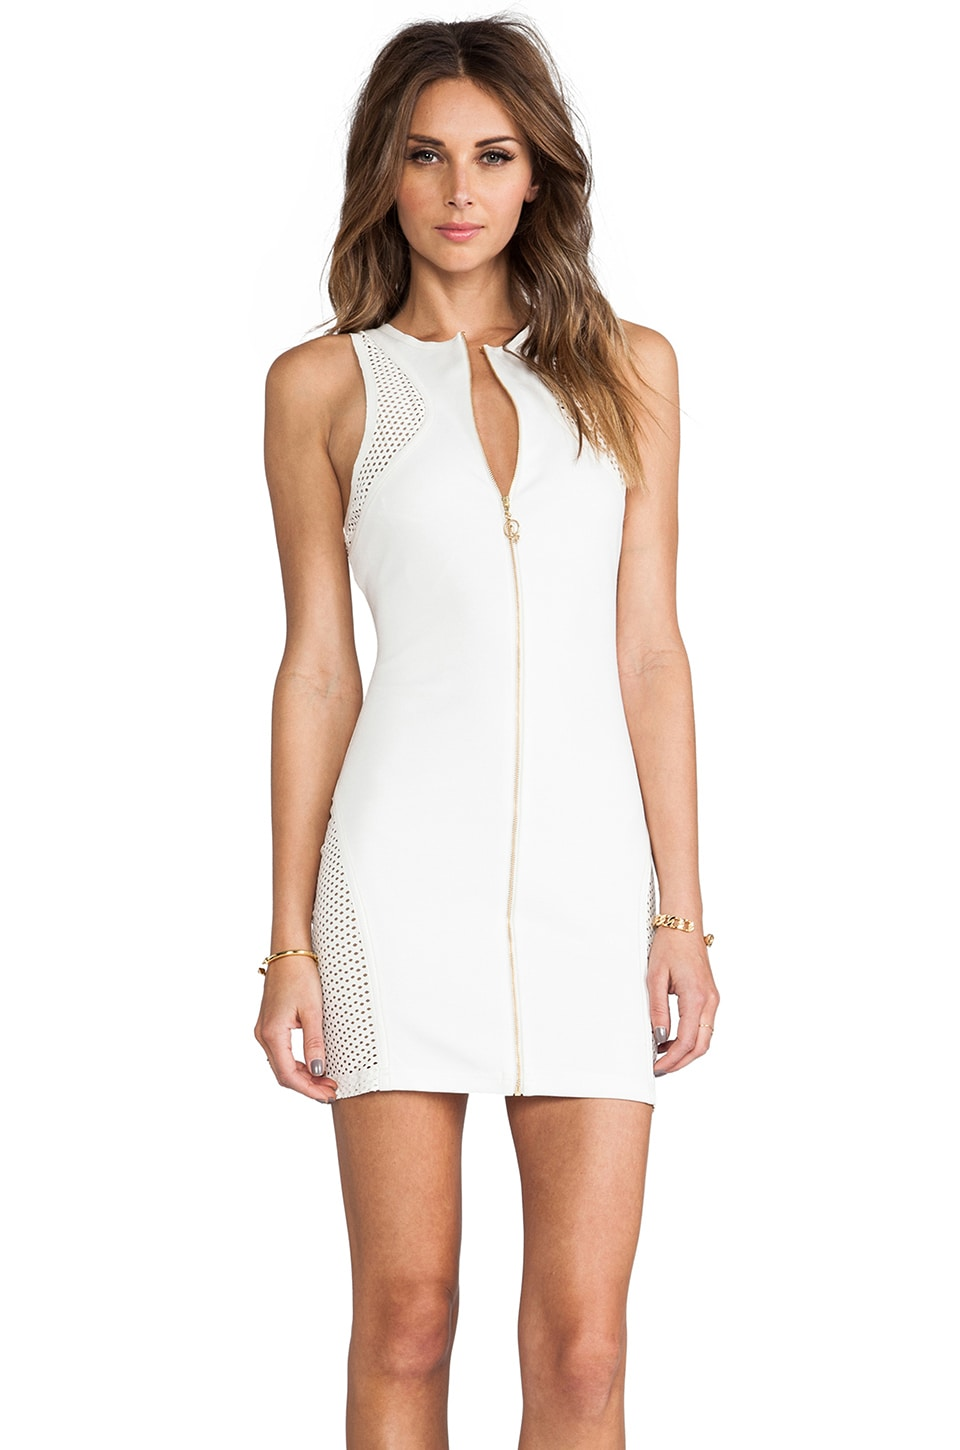 bless'ed are the meek Shell Dress in Ivory